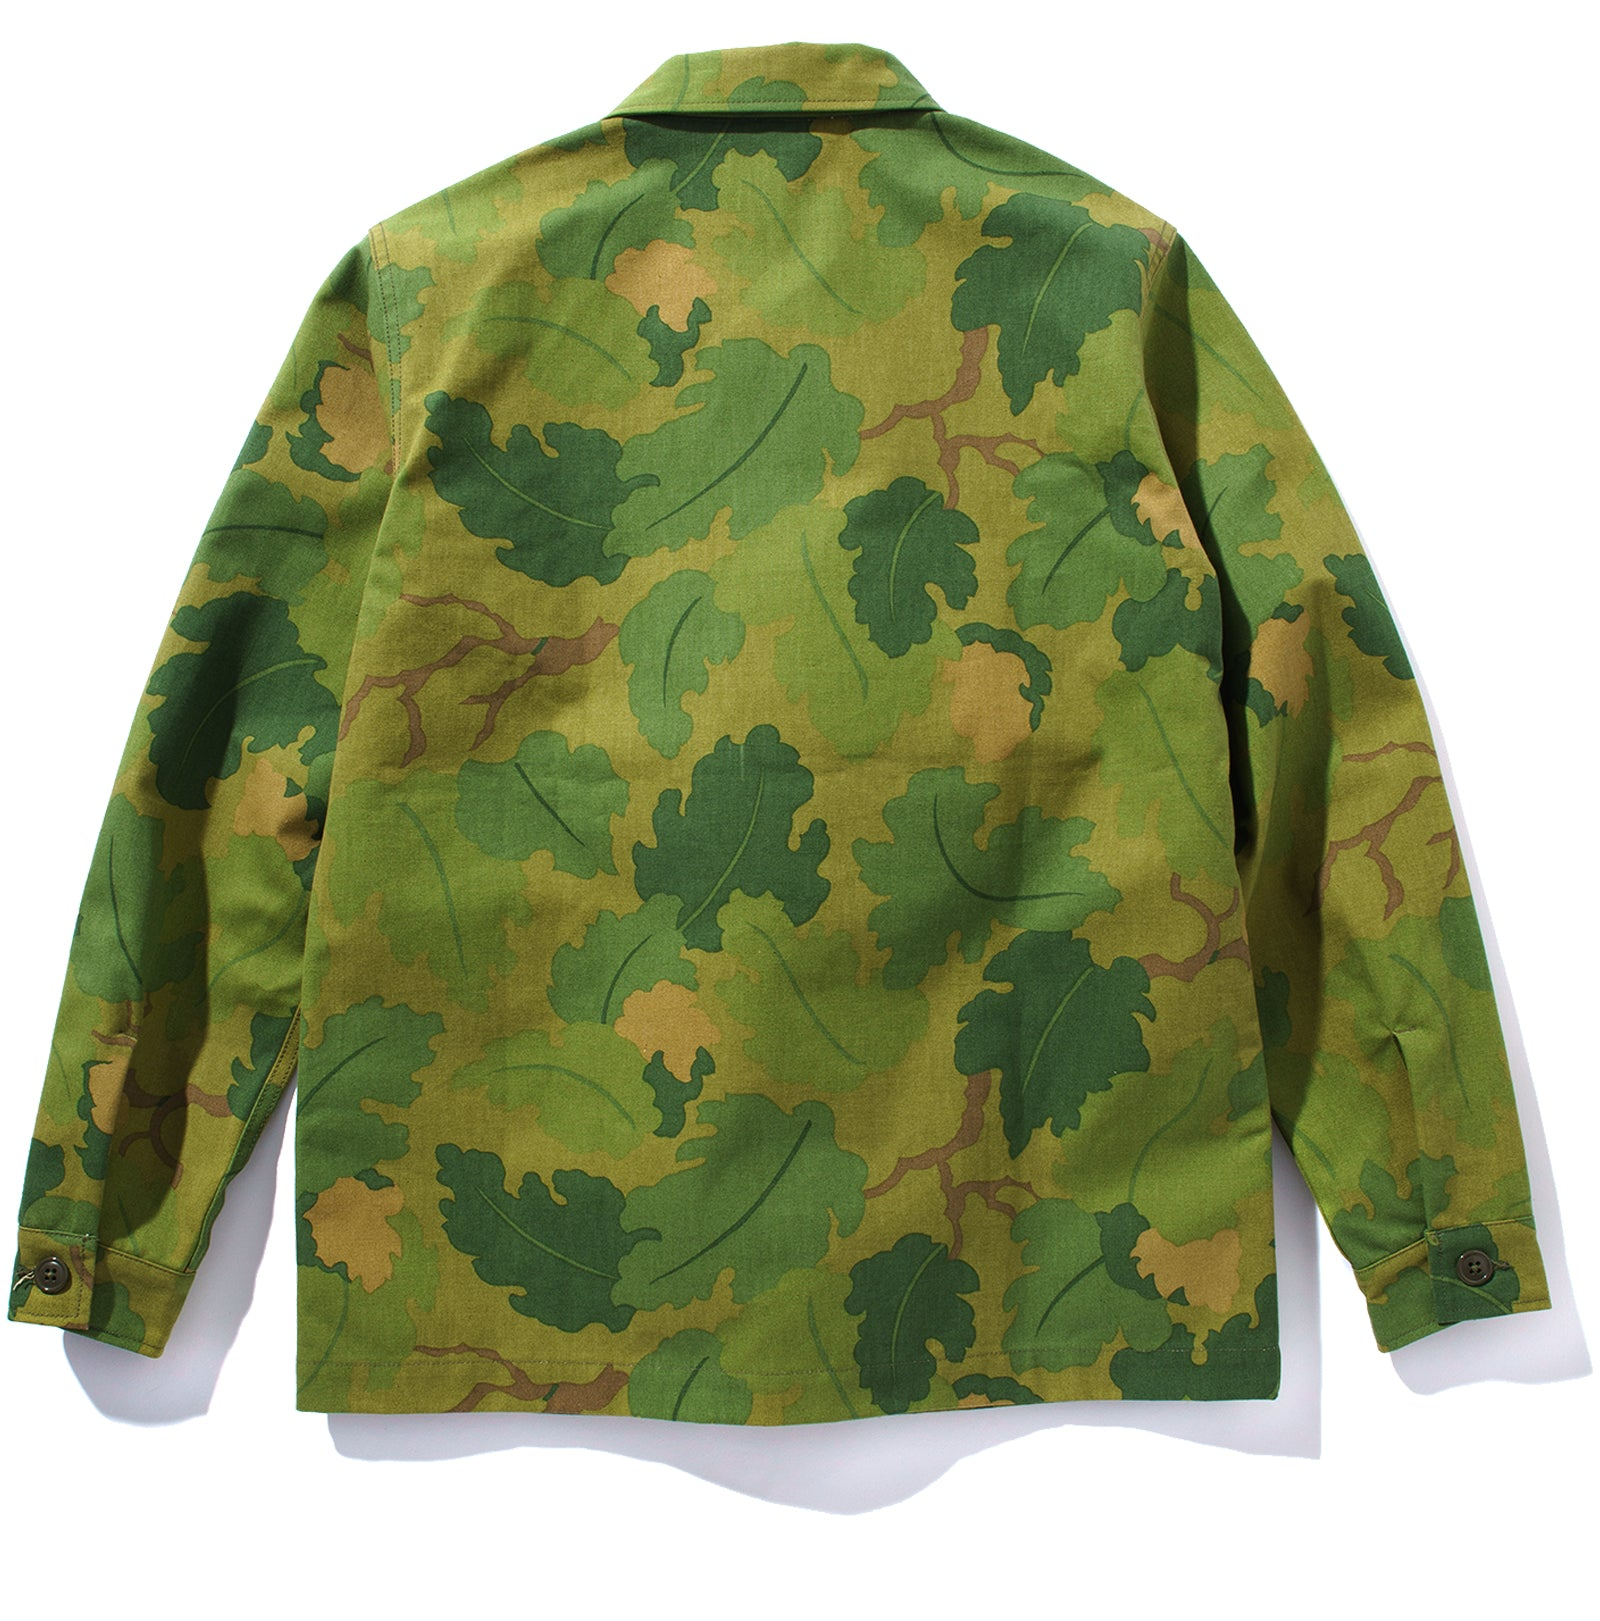 MITCHELL PATTERN UNIFORM SHIRT